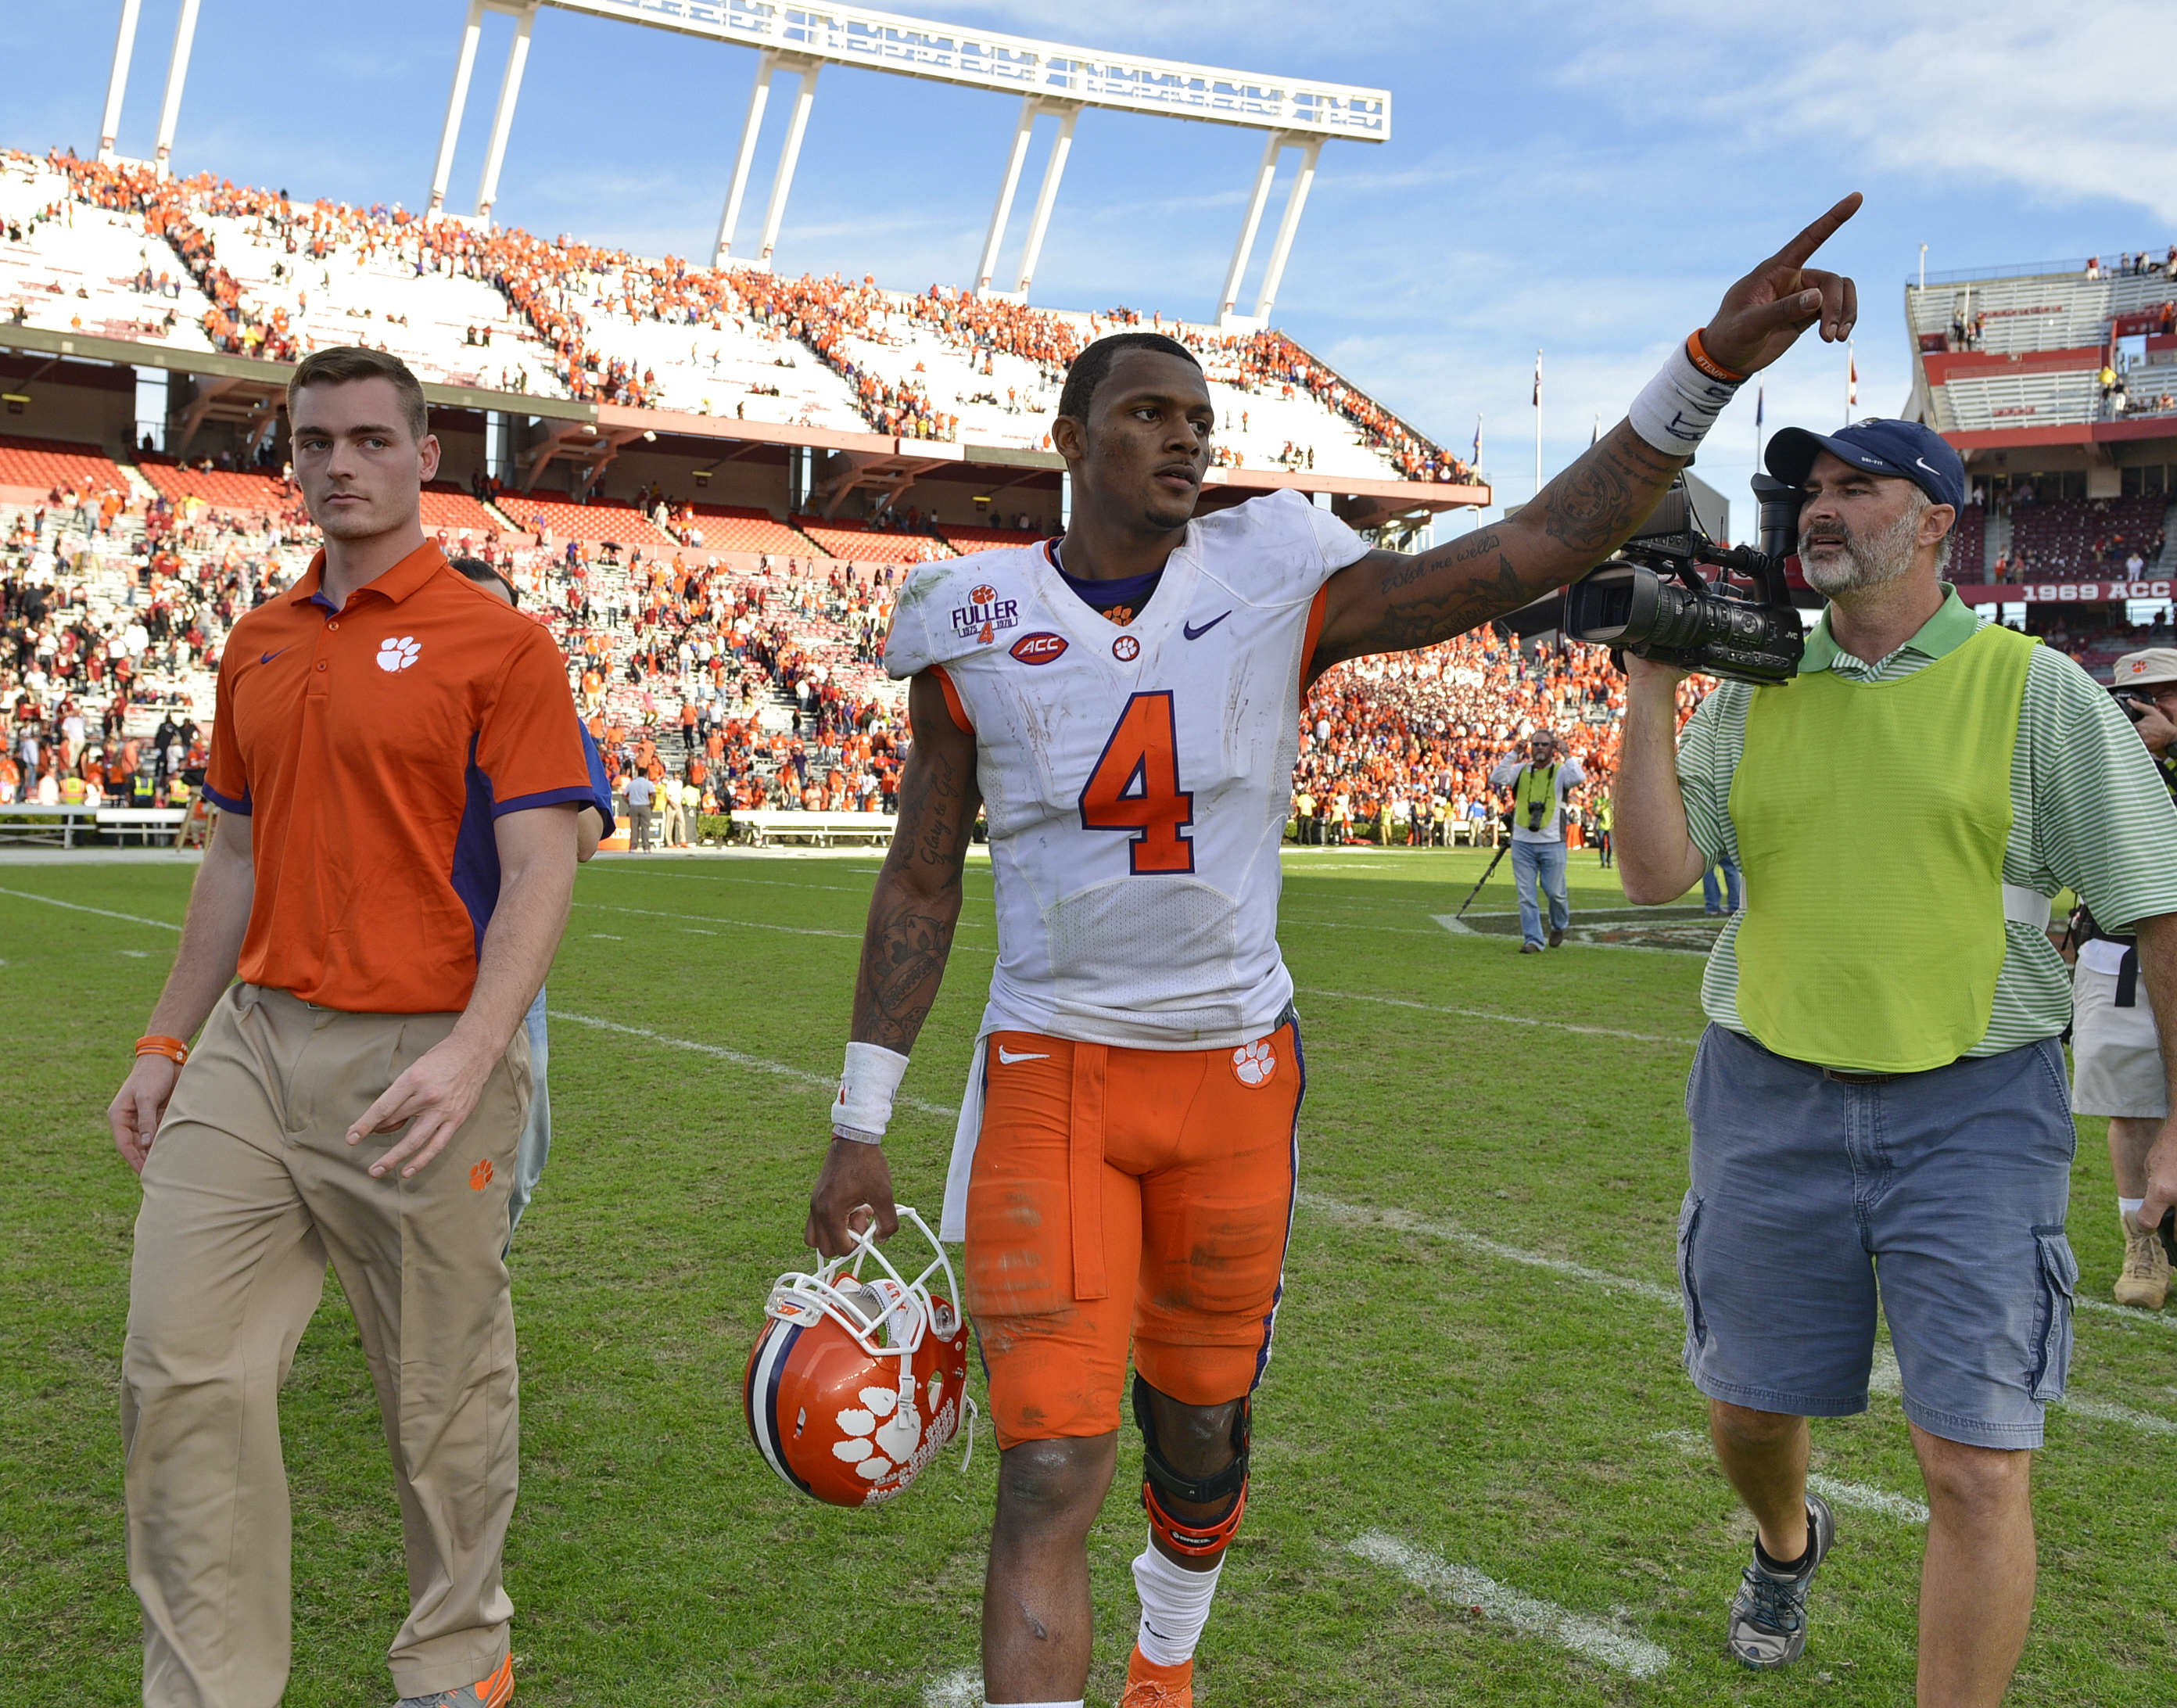 Clemson quarterback Deshaun Watson gestures to the fans after an NCAA college football game against South Carolina Saturday,  Nov. 28, 2015,  in Columbia,  S.C. Clemson won 37-32. (AP Photo/Richard Shiro)